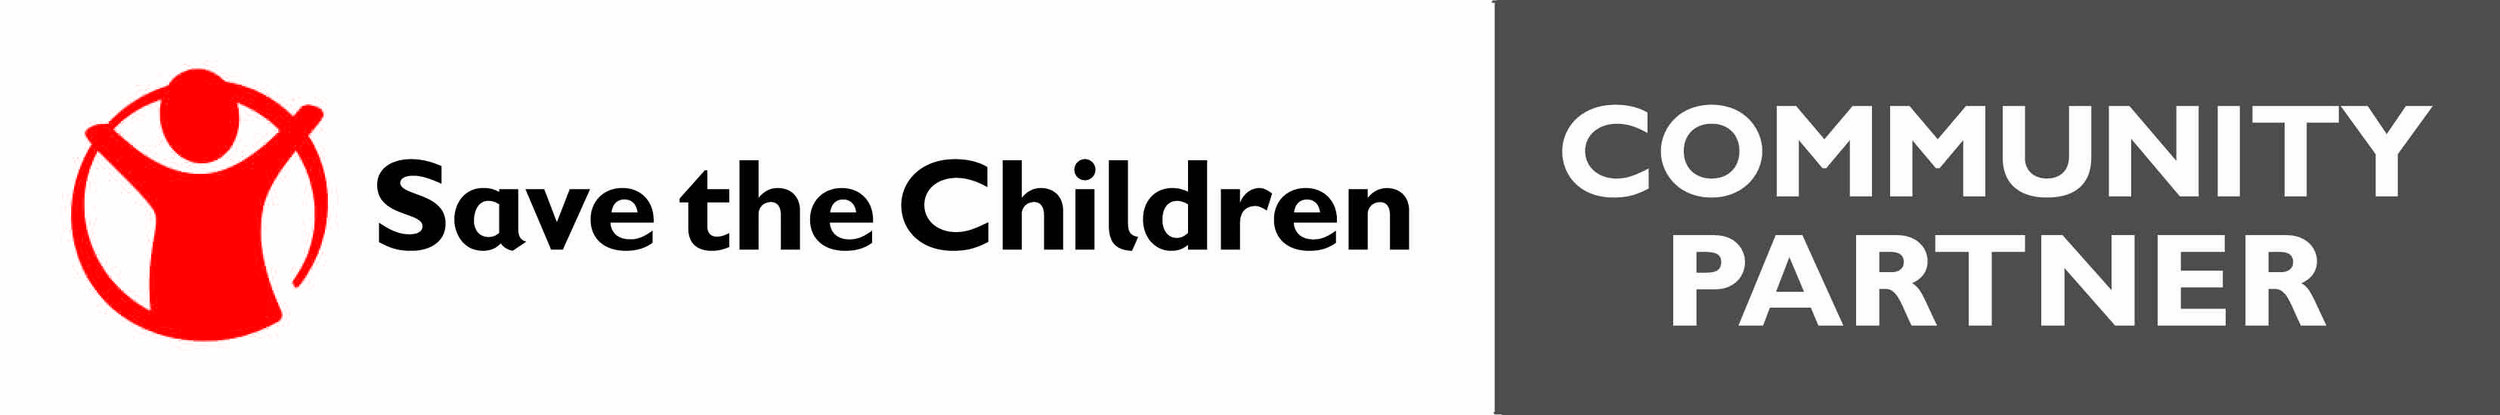 save-the-children-community-partner-badge-horizontal.jpg